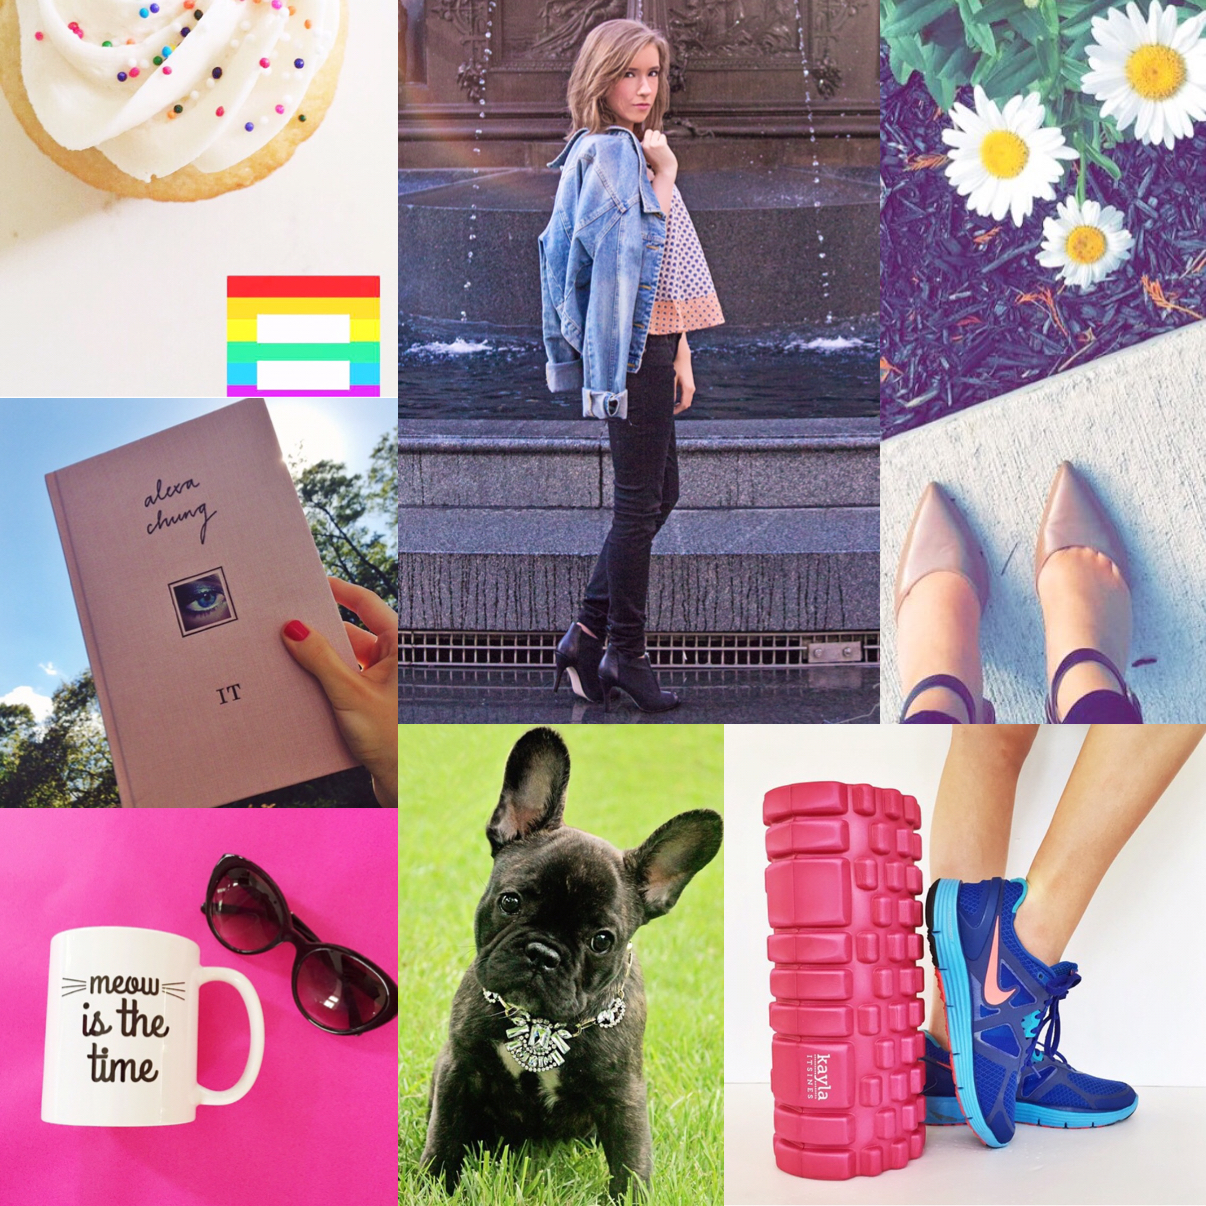 Step Inside My Closet, Instagram Recap, The Shopping Bag, Kayla Itsines, Bikini Body Guides, Alexa Chung, Jessica Simpson, A Cup Of Quotes, summer, love wins, equality, Nine West,